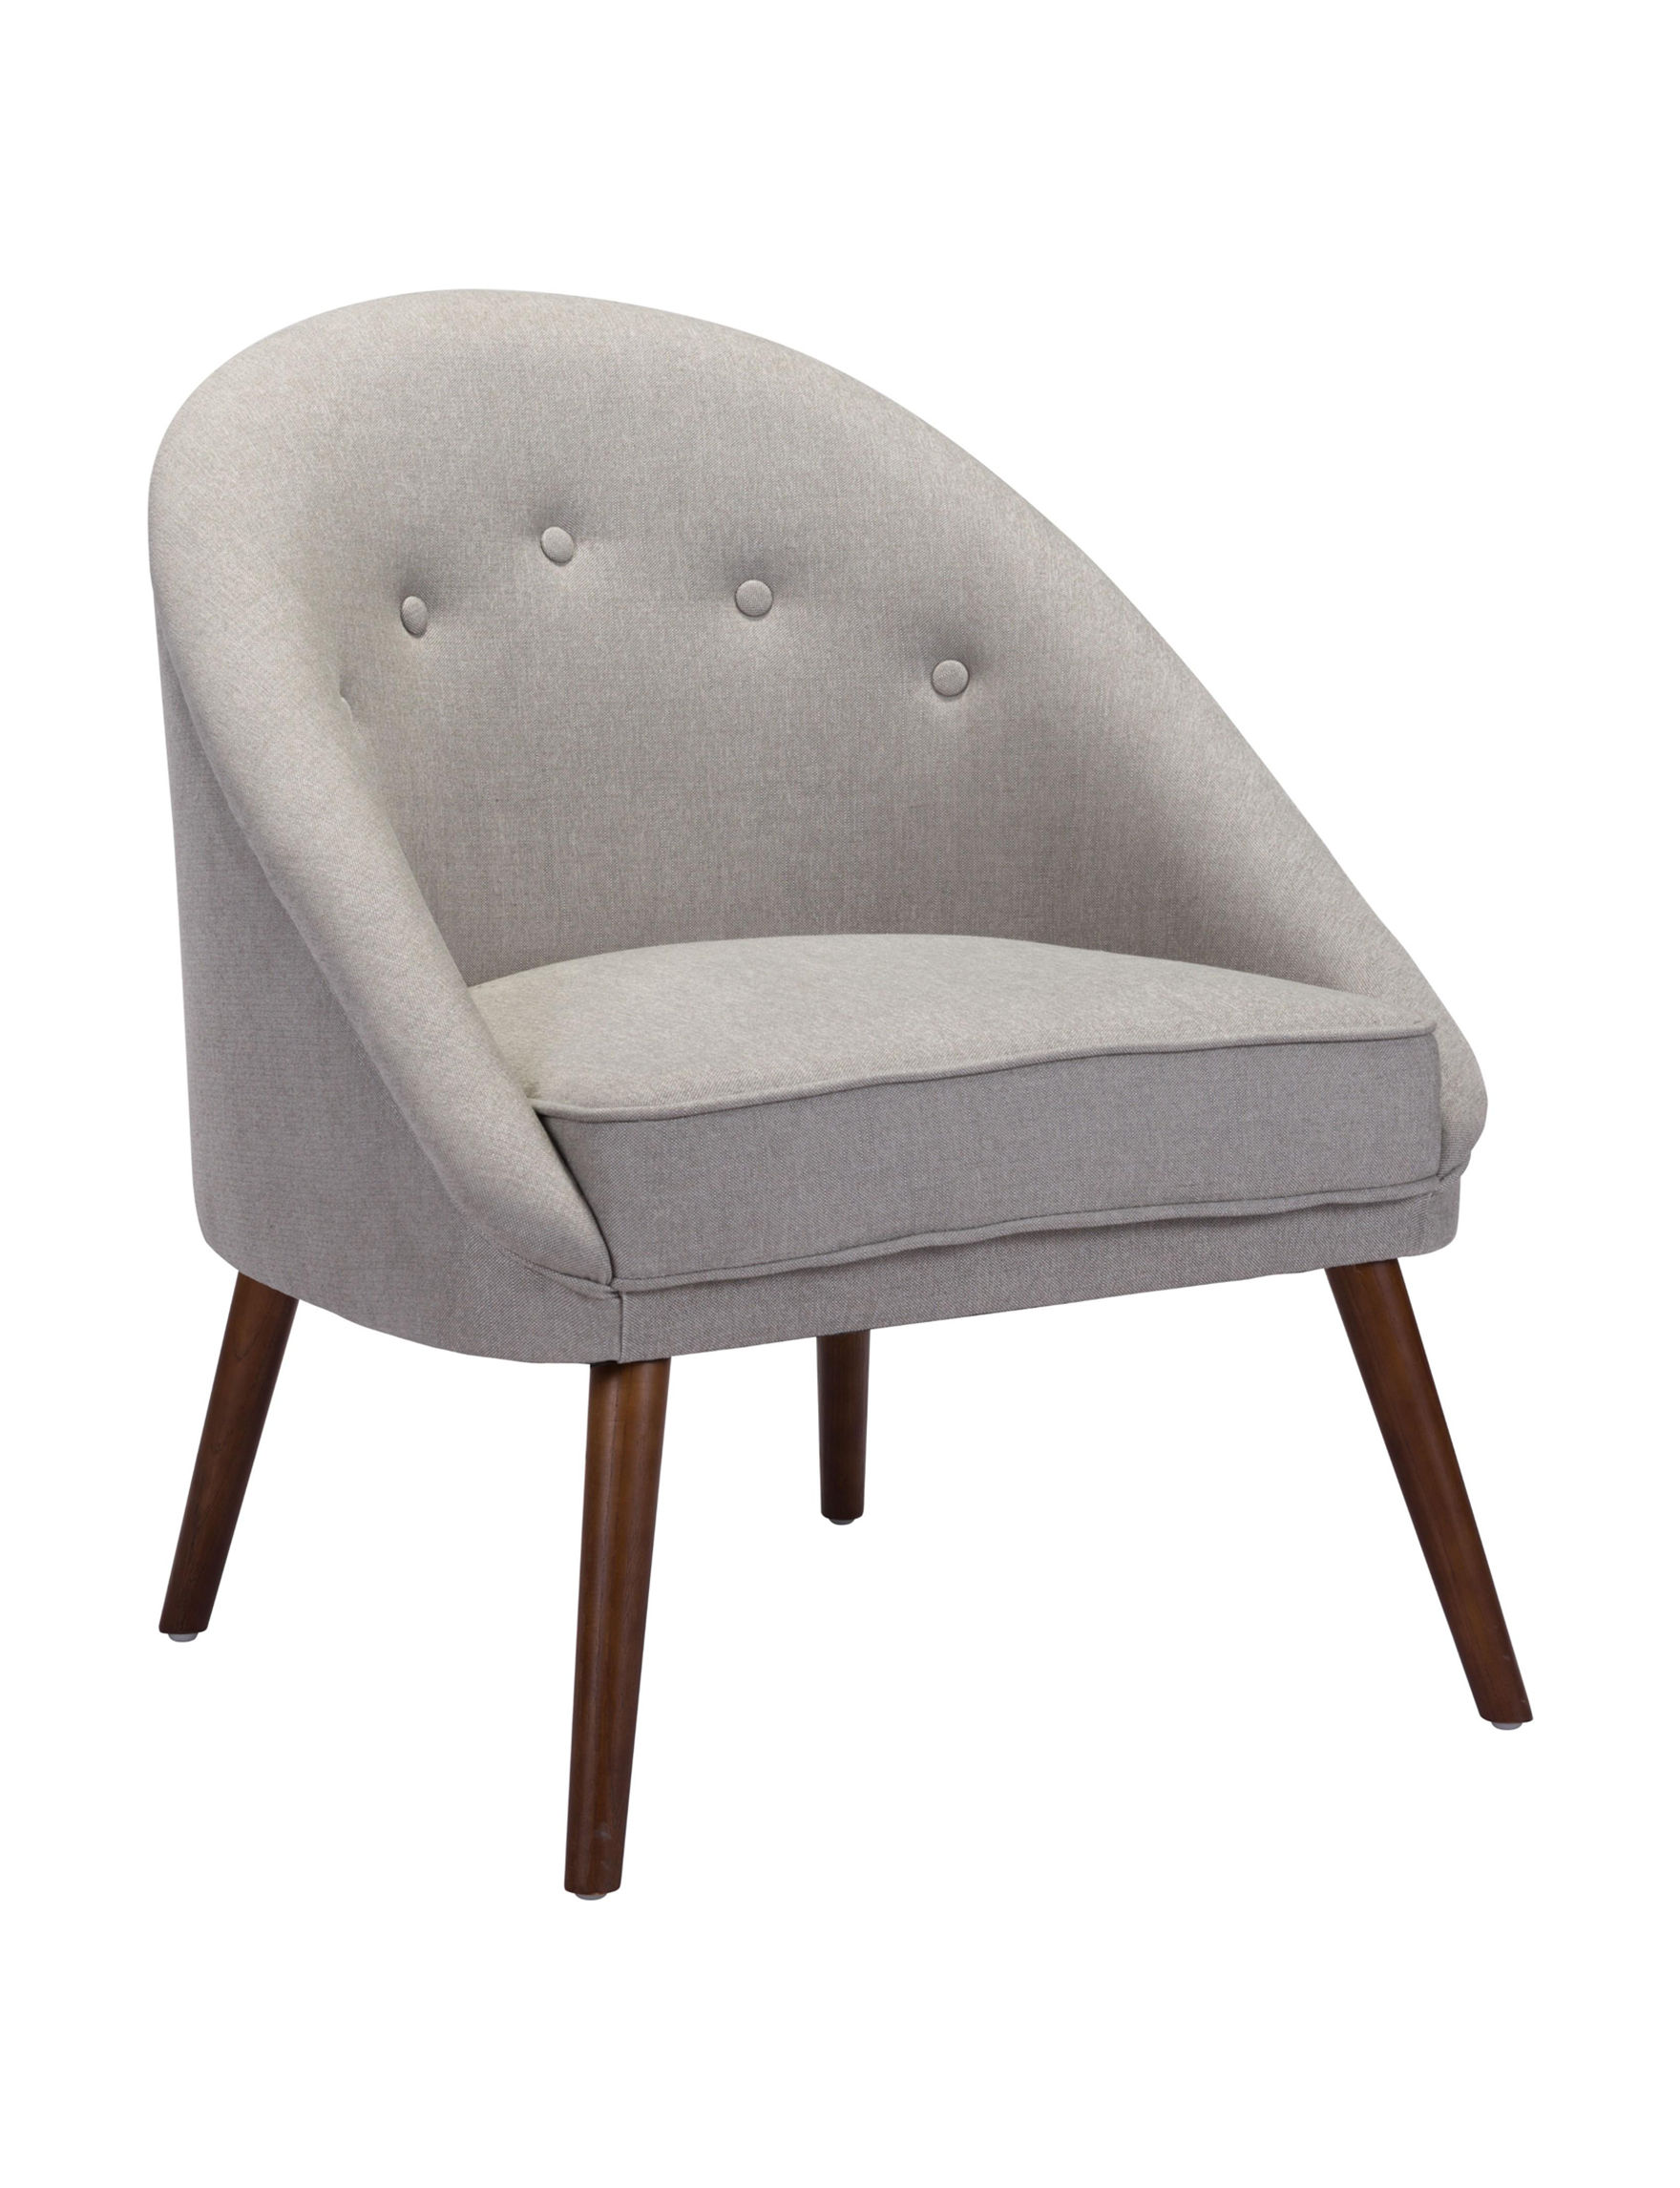 Zuo Modern Light Grey Accent Chairs Living Room Furniture